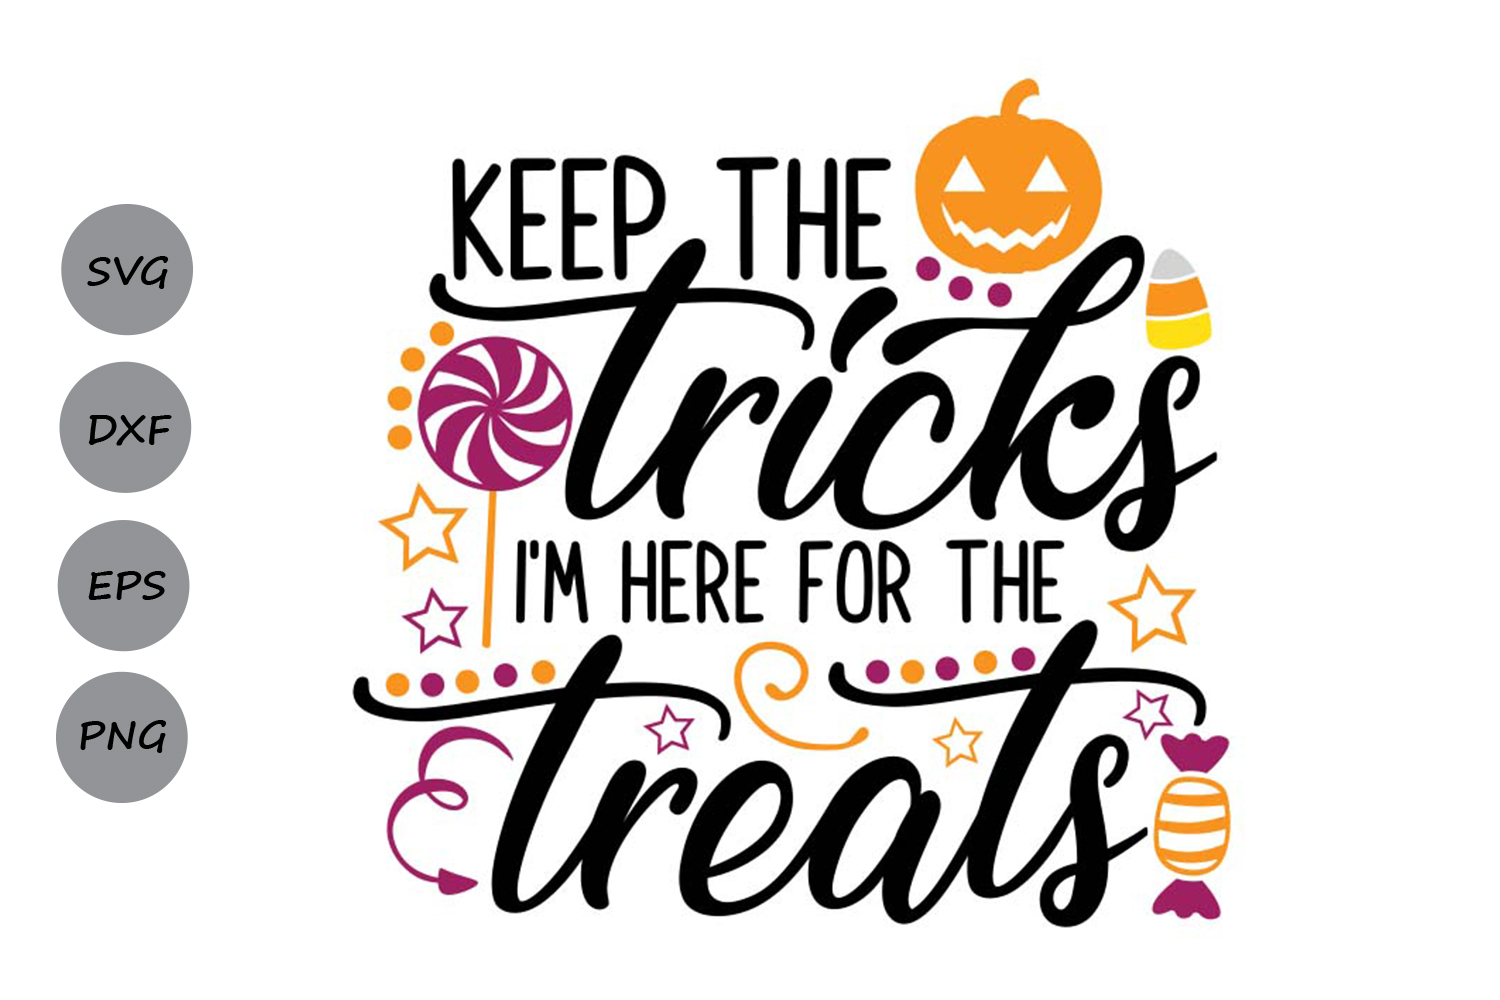 Download Free Keep The Tricks I M Here For Treats Graphic By Cosmosfineart SVG Cut Files